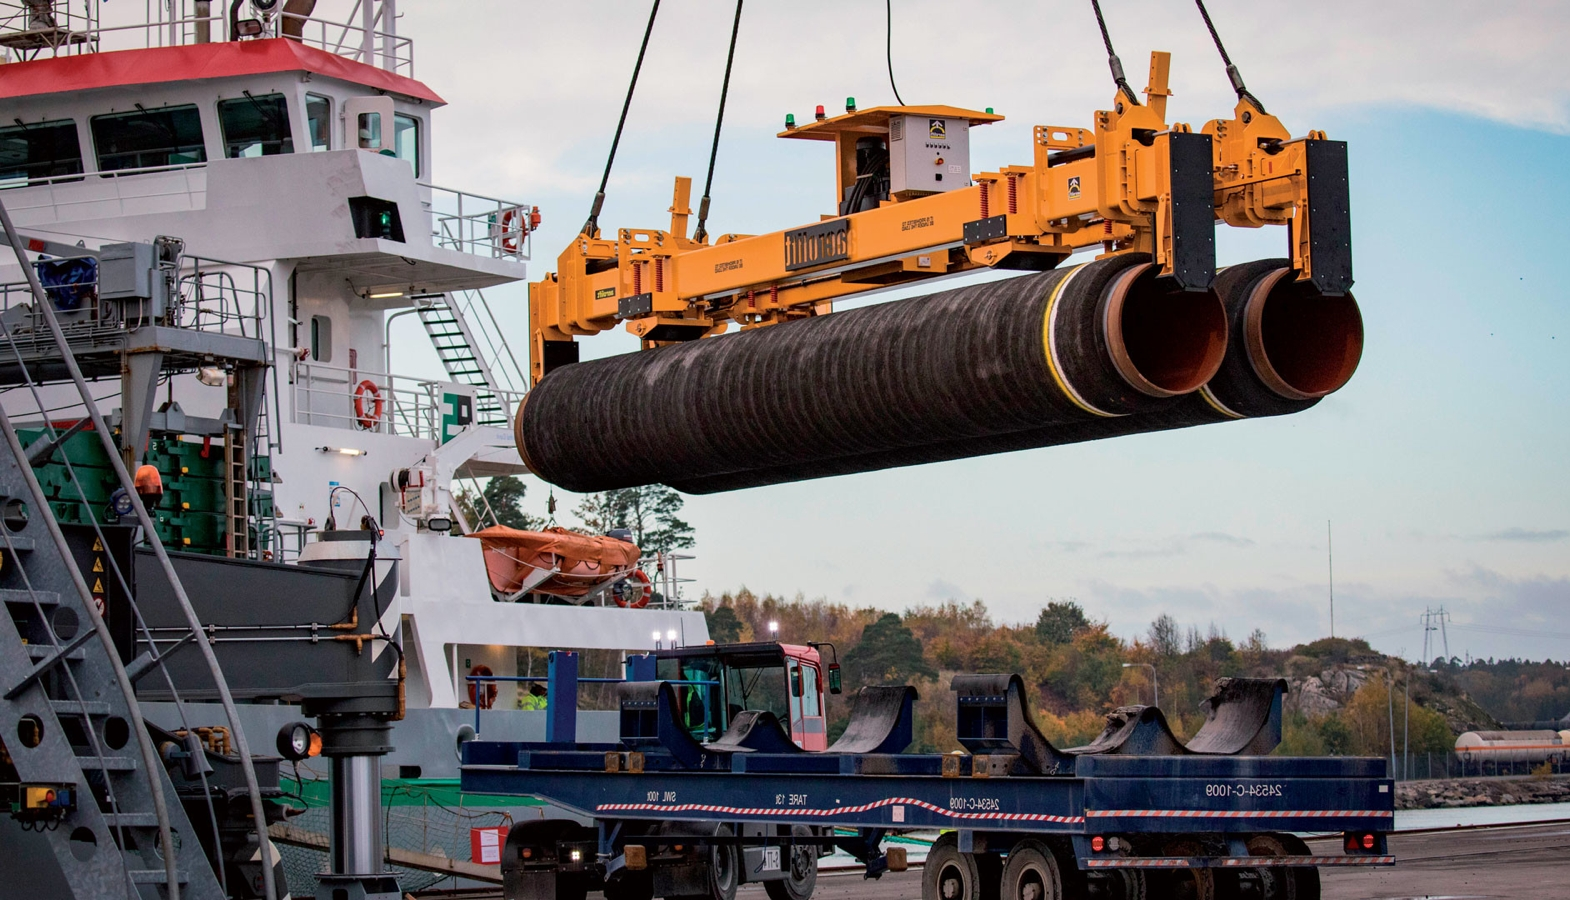 German Greens Demand To Close The New Fund In Support Of Nord Stream 2